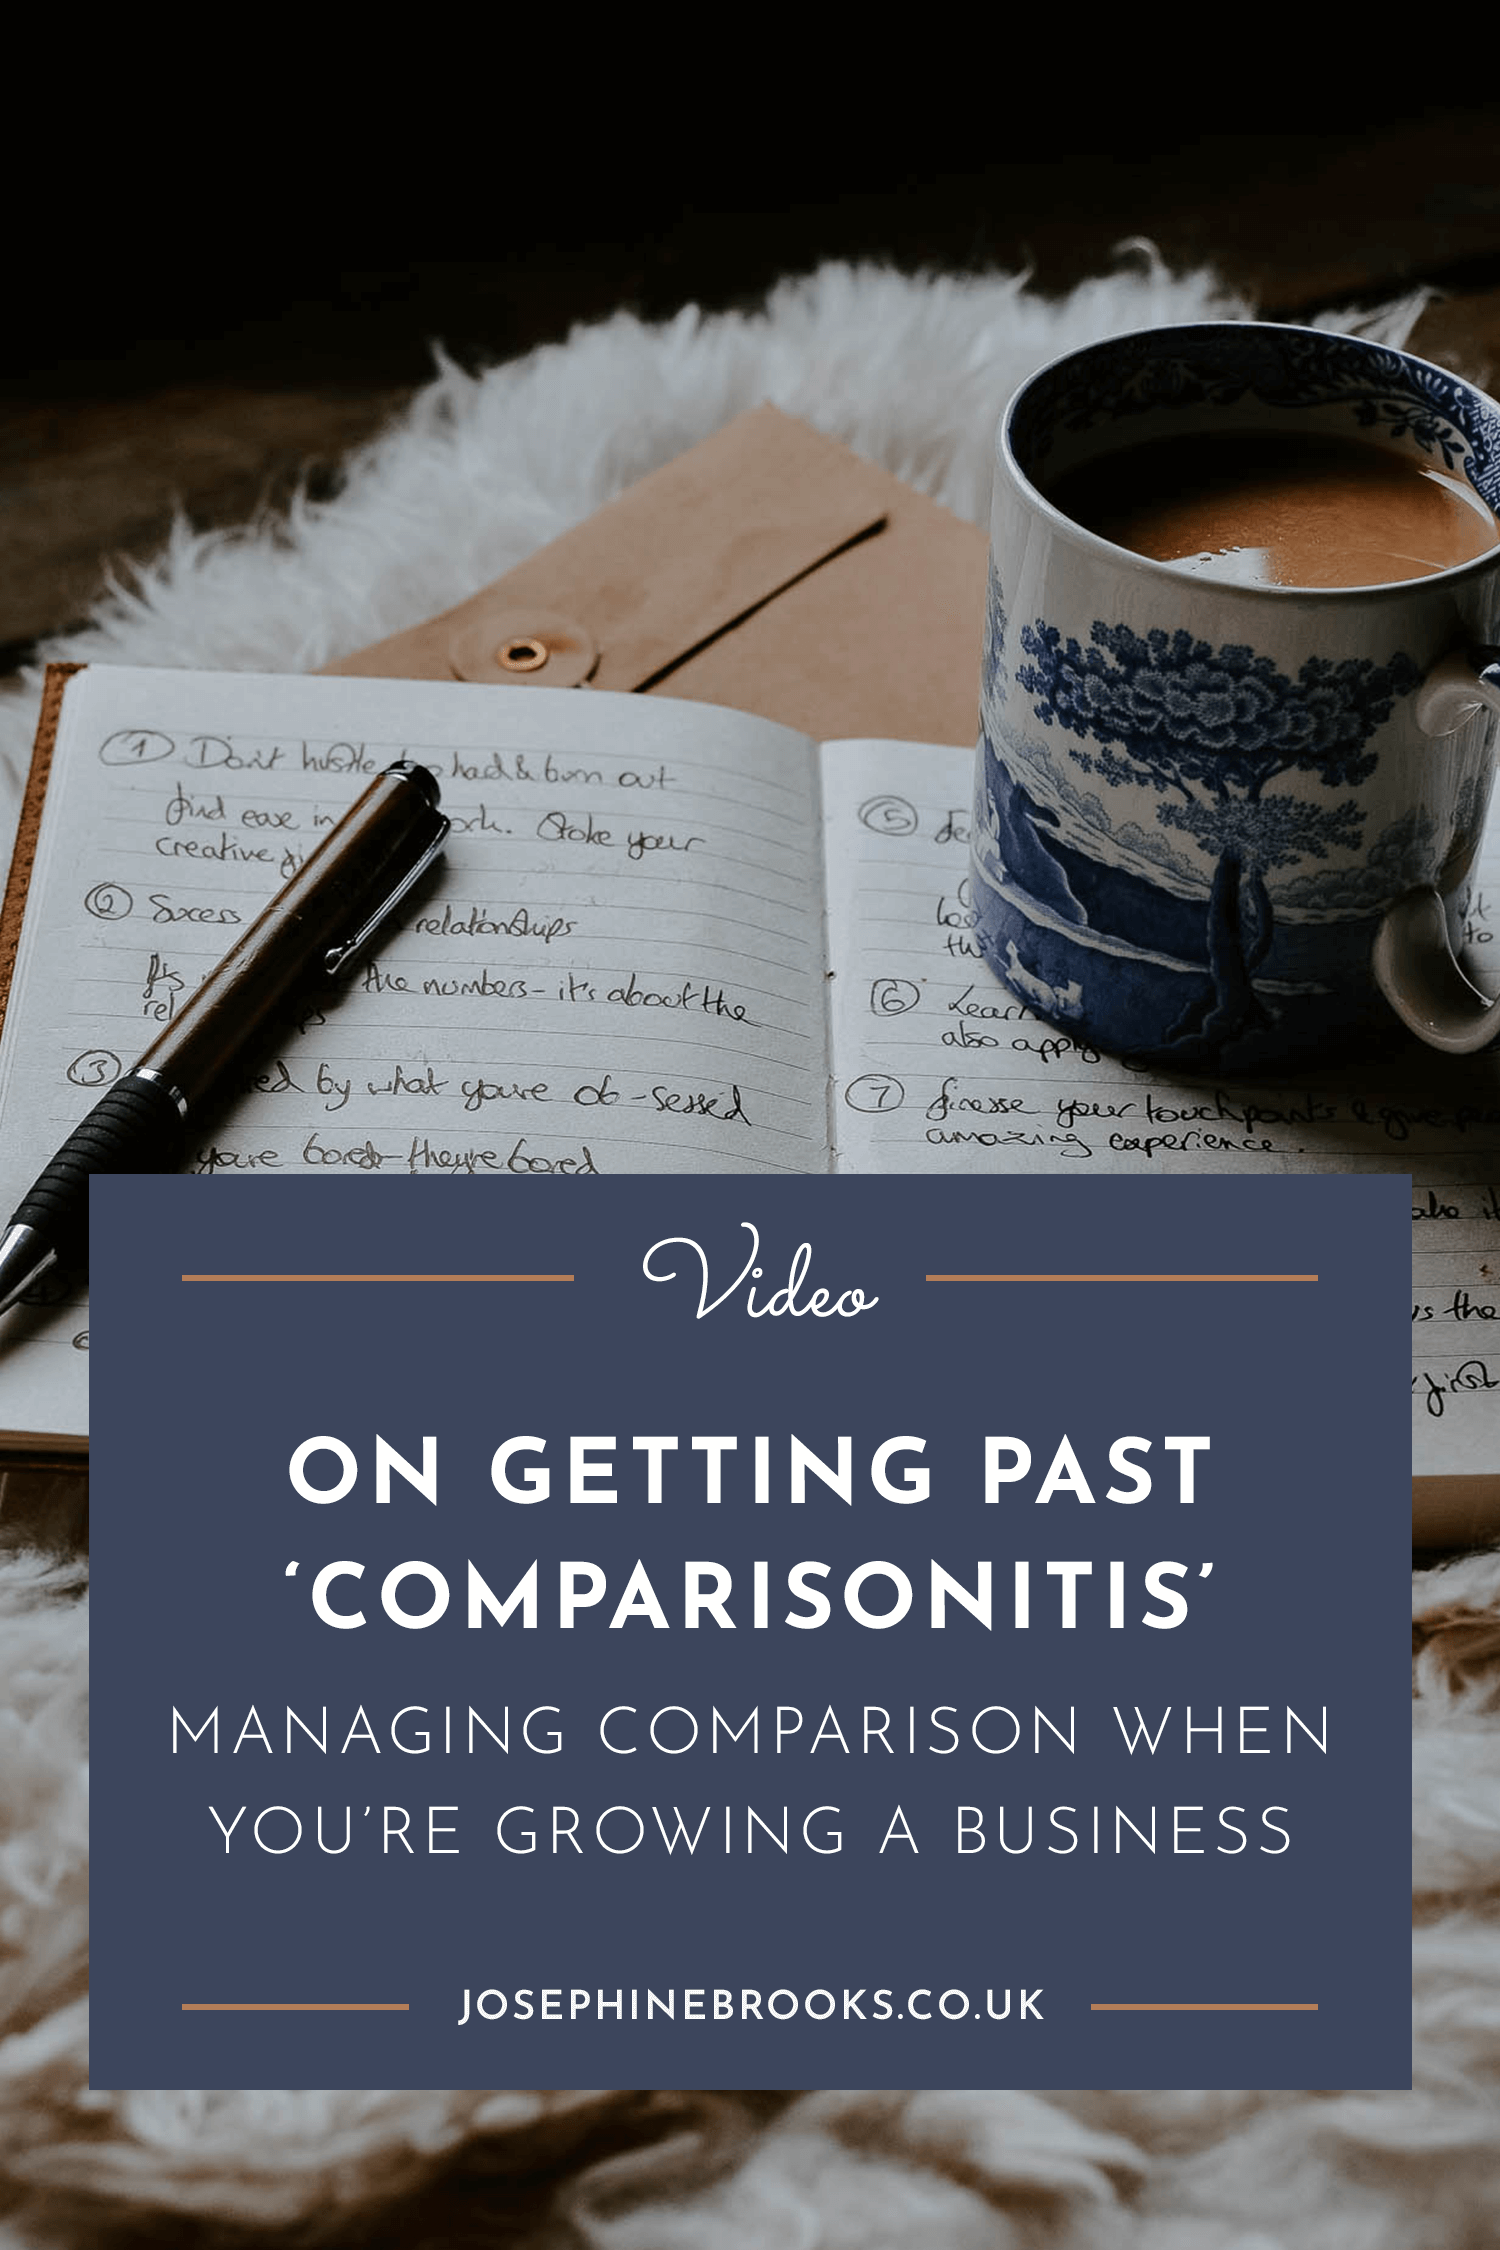 Dealing with comparisonitis - Managing comparison when you're growing your business | Josephine Brooks